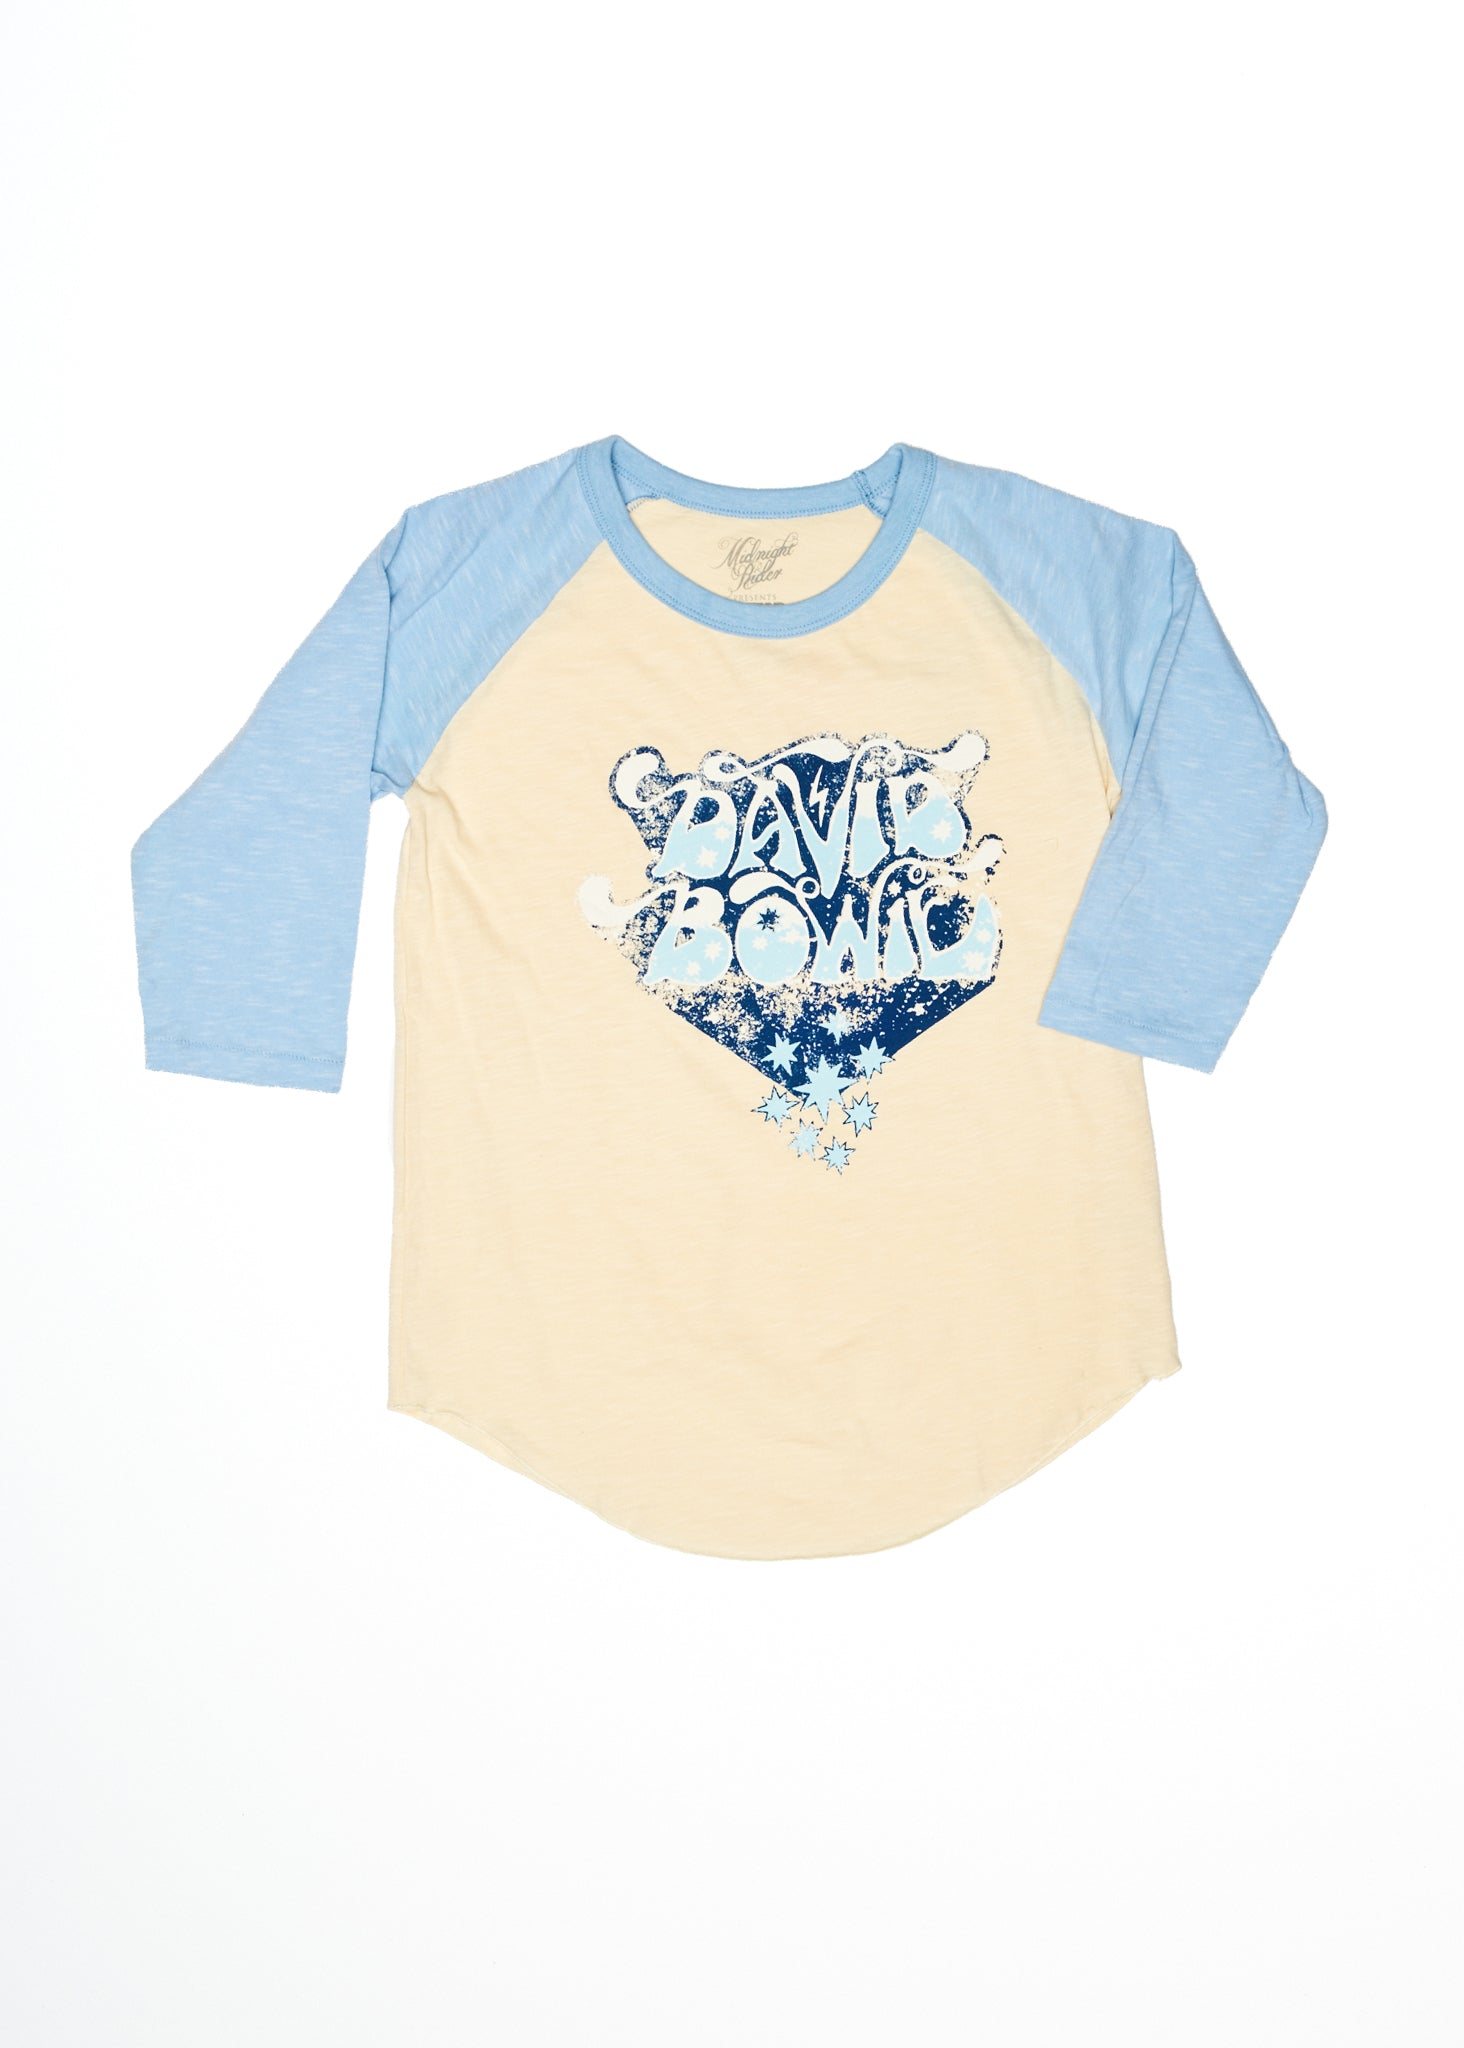 David Bowie Bubble Letter Baseball Tee - Baseball Tee - Midnight Rider